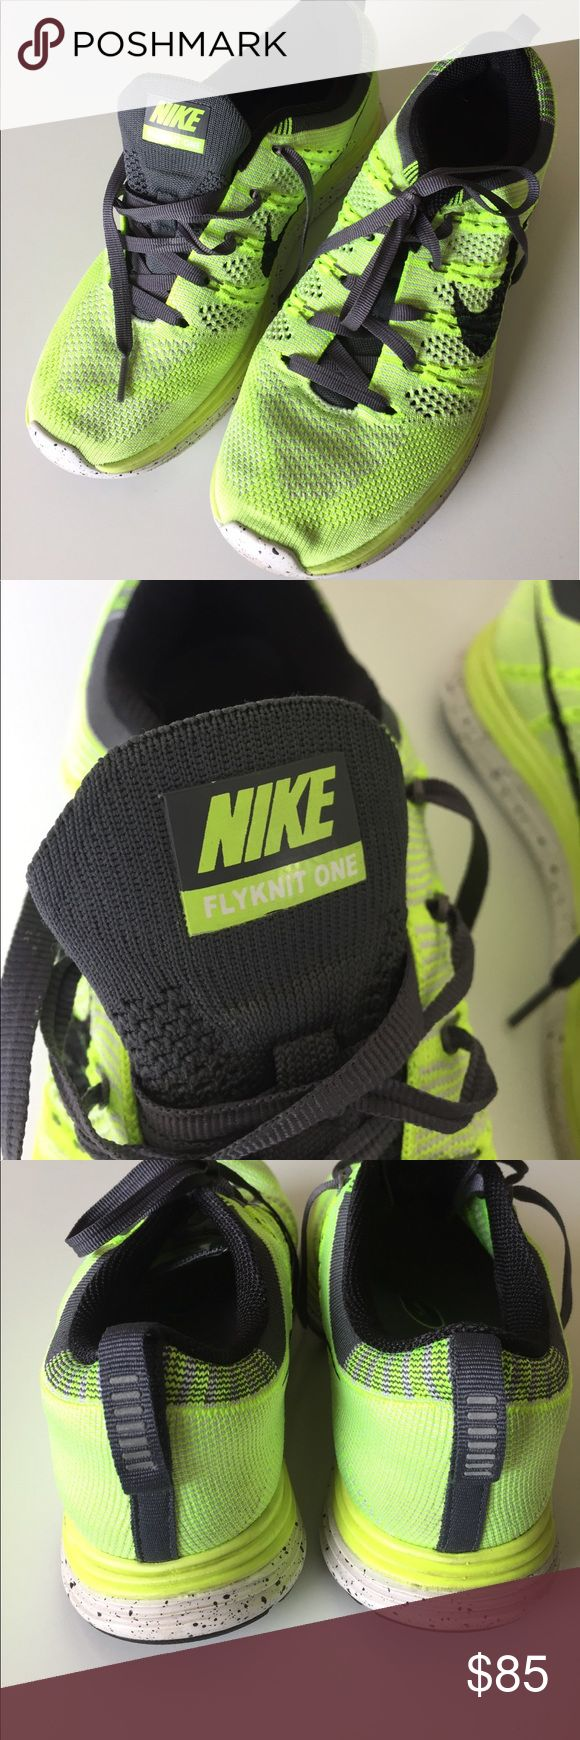 "Nike Neon Flyknit One Women's Nike Flyknit® Lunarlon One #554888-701. Neon yellow green. Removable Ortholite® insoles. Lightly worn, good condition. Size is 7.5, but my toe hits the top and I run between a 7 and 7.5 (I also have very wide feet). Toe to heel measures 10.5"". 🚫No trades🚫 Nike Shoes Athletic Shoes"